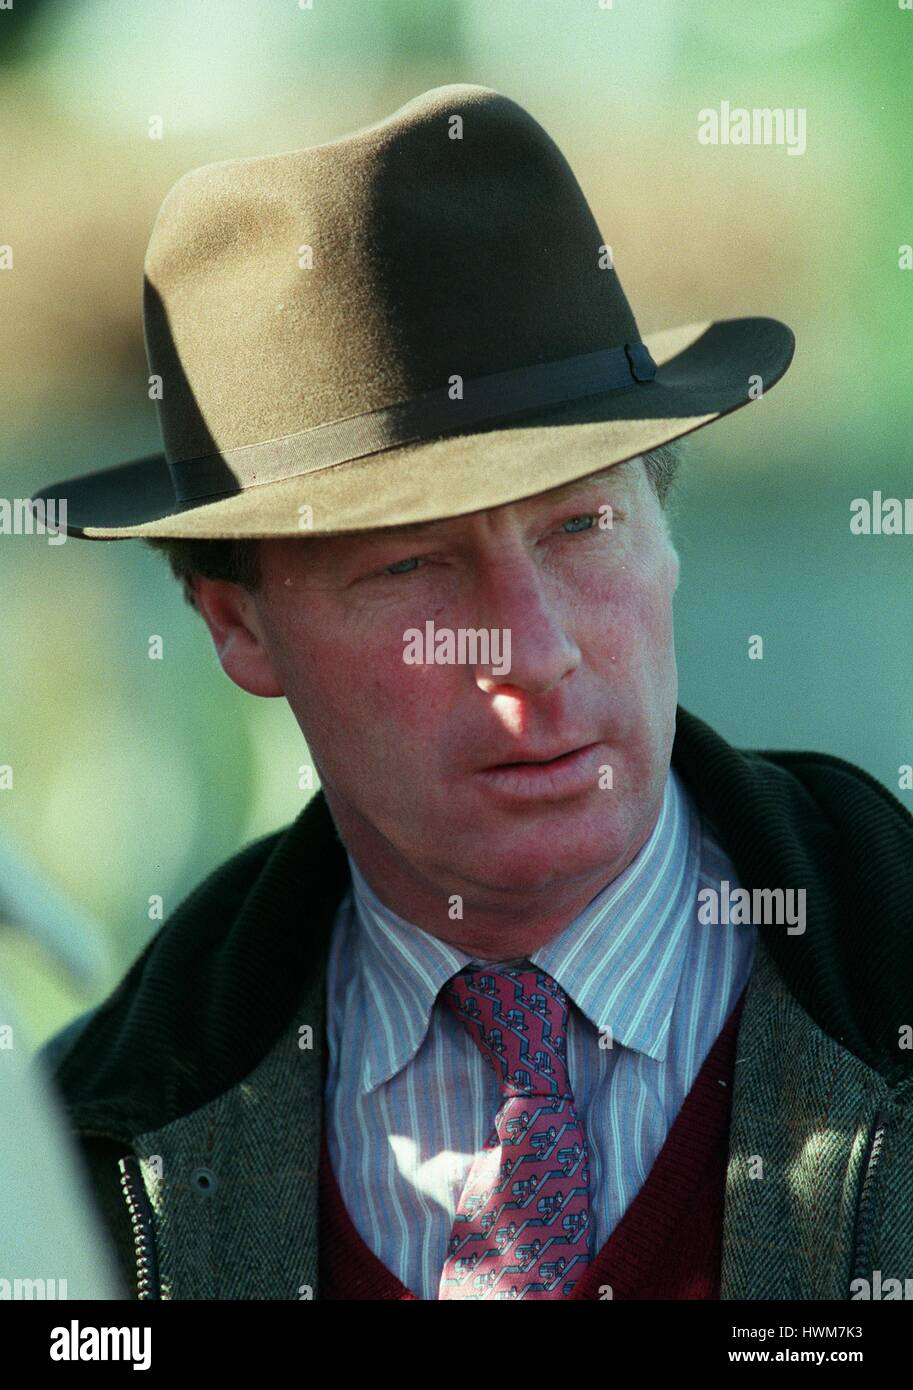 R.H.BUCKLER RACE HORSE TRAINER 27 March 1997 Stock Photo